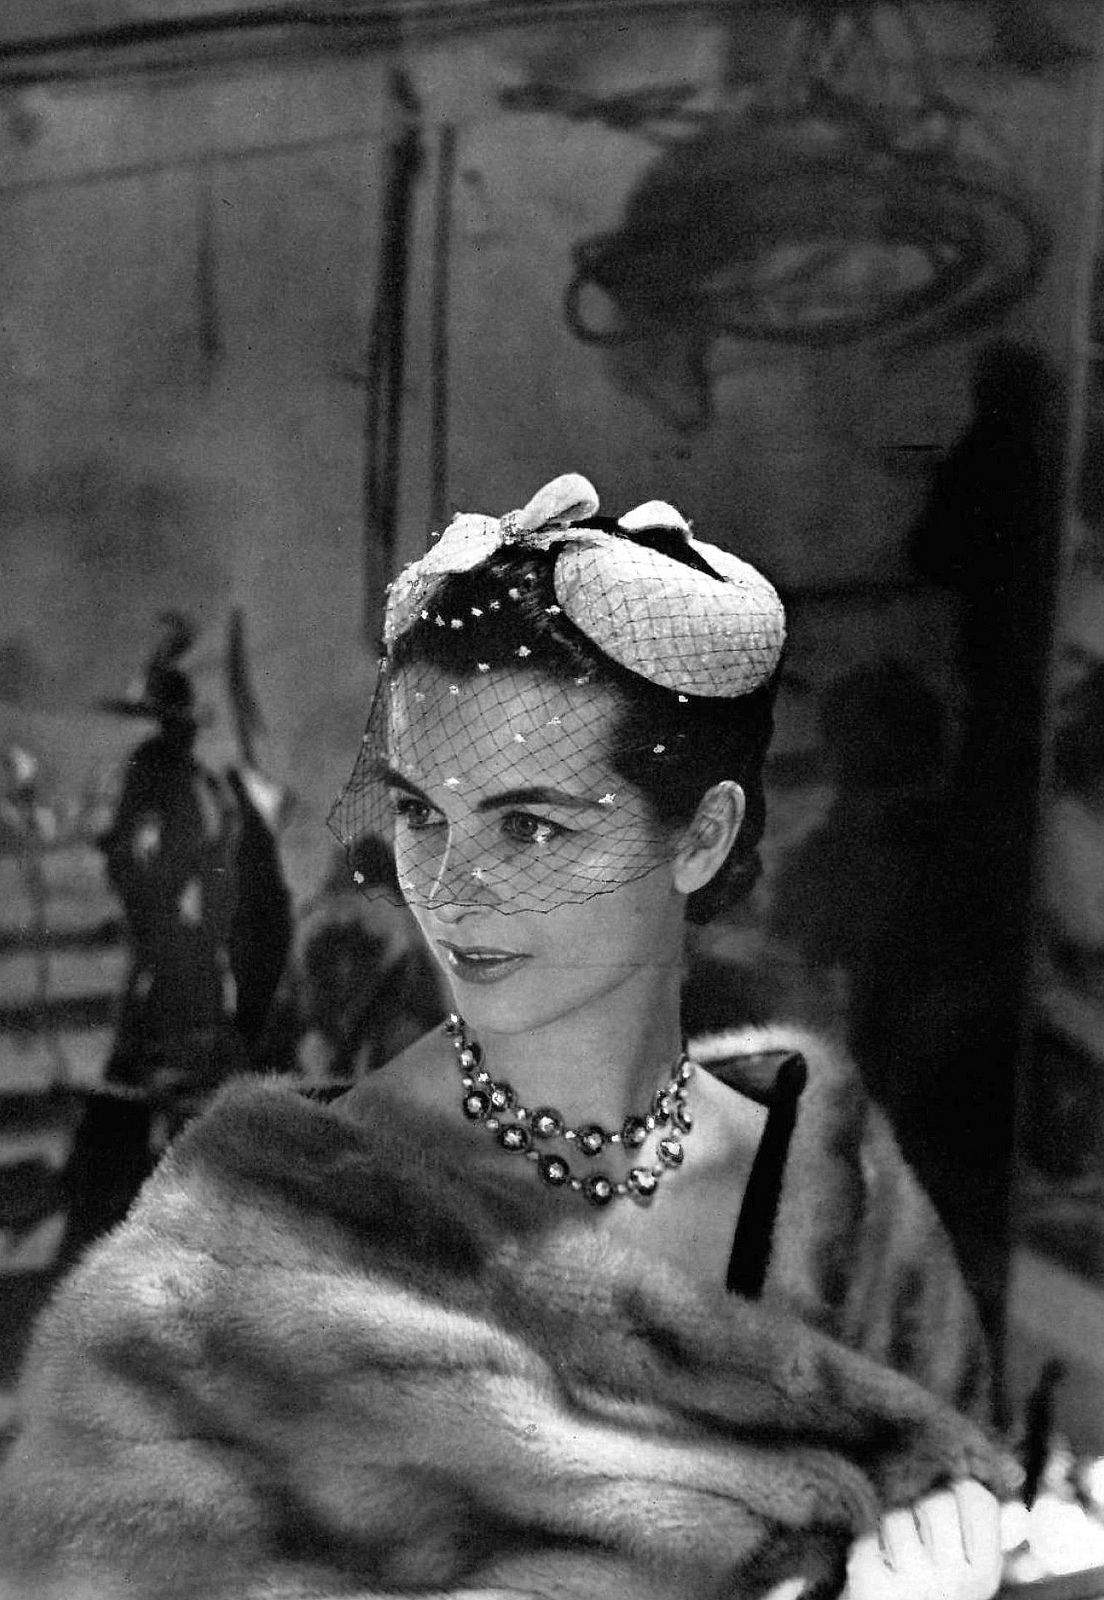 Model is wearing a silver and white lamé evening cap with embroidered voilette by Paulette, photo by Georges Saad, 1955